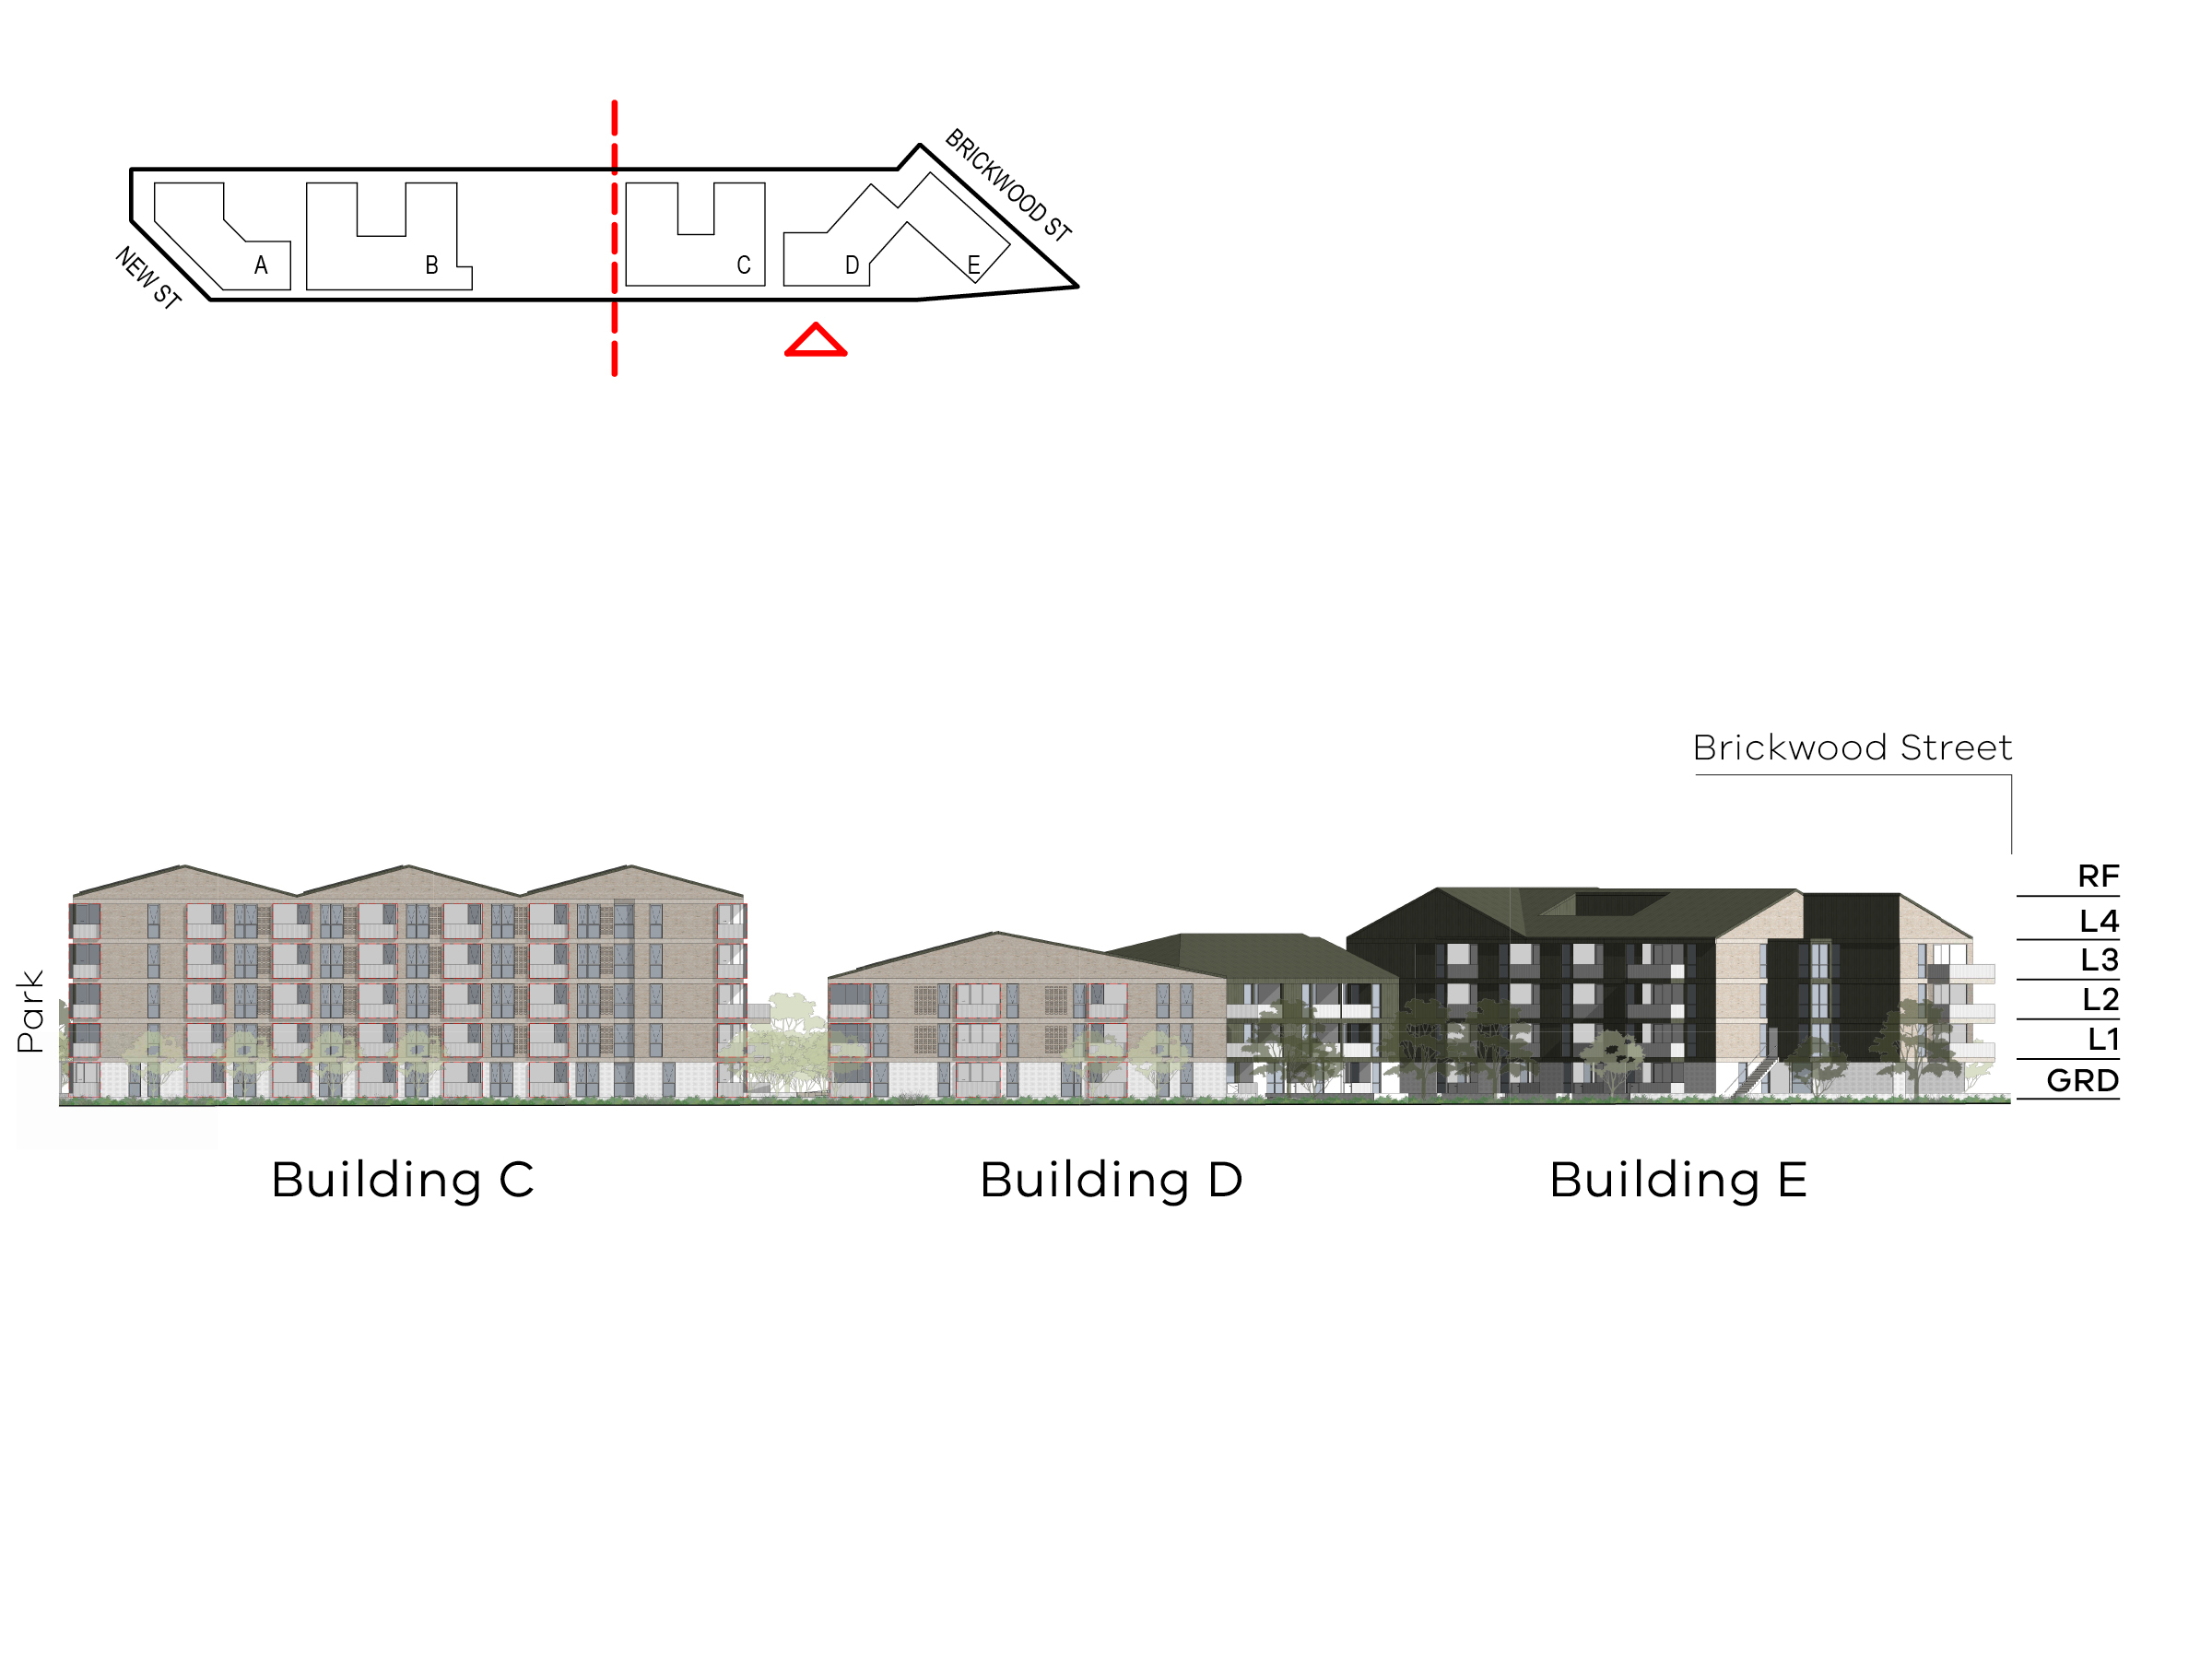 Diagram showing the heights of buildings C, D and E as seen from Elster Creek. Building C includes ground level, level 1 - 4 and a roof, building D includes ground level, level 1-2 and a roof, building E includes ground level, level 1-3 and a roof.